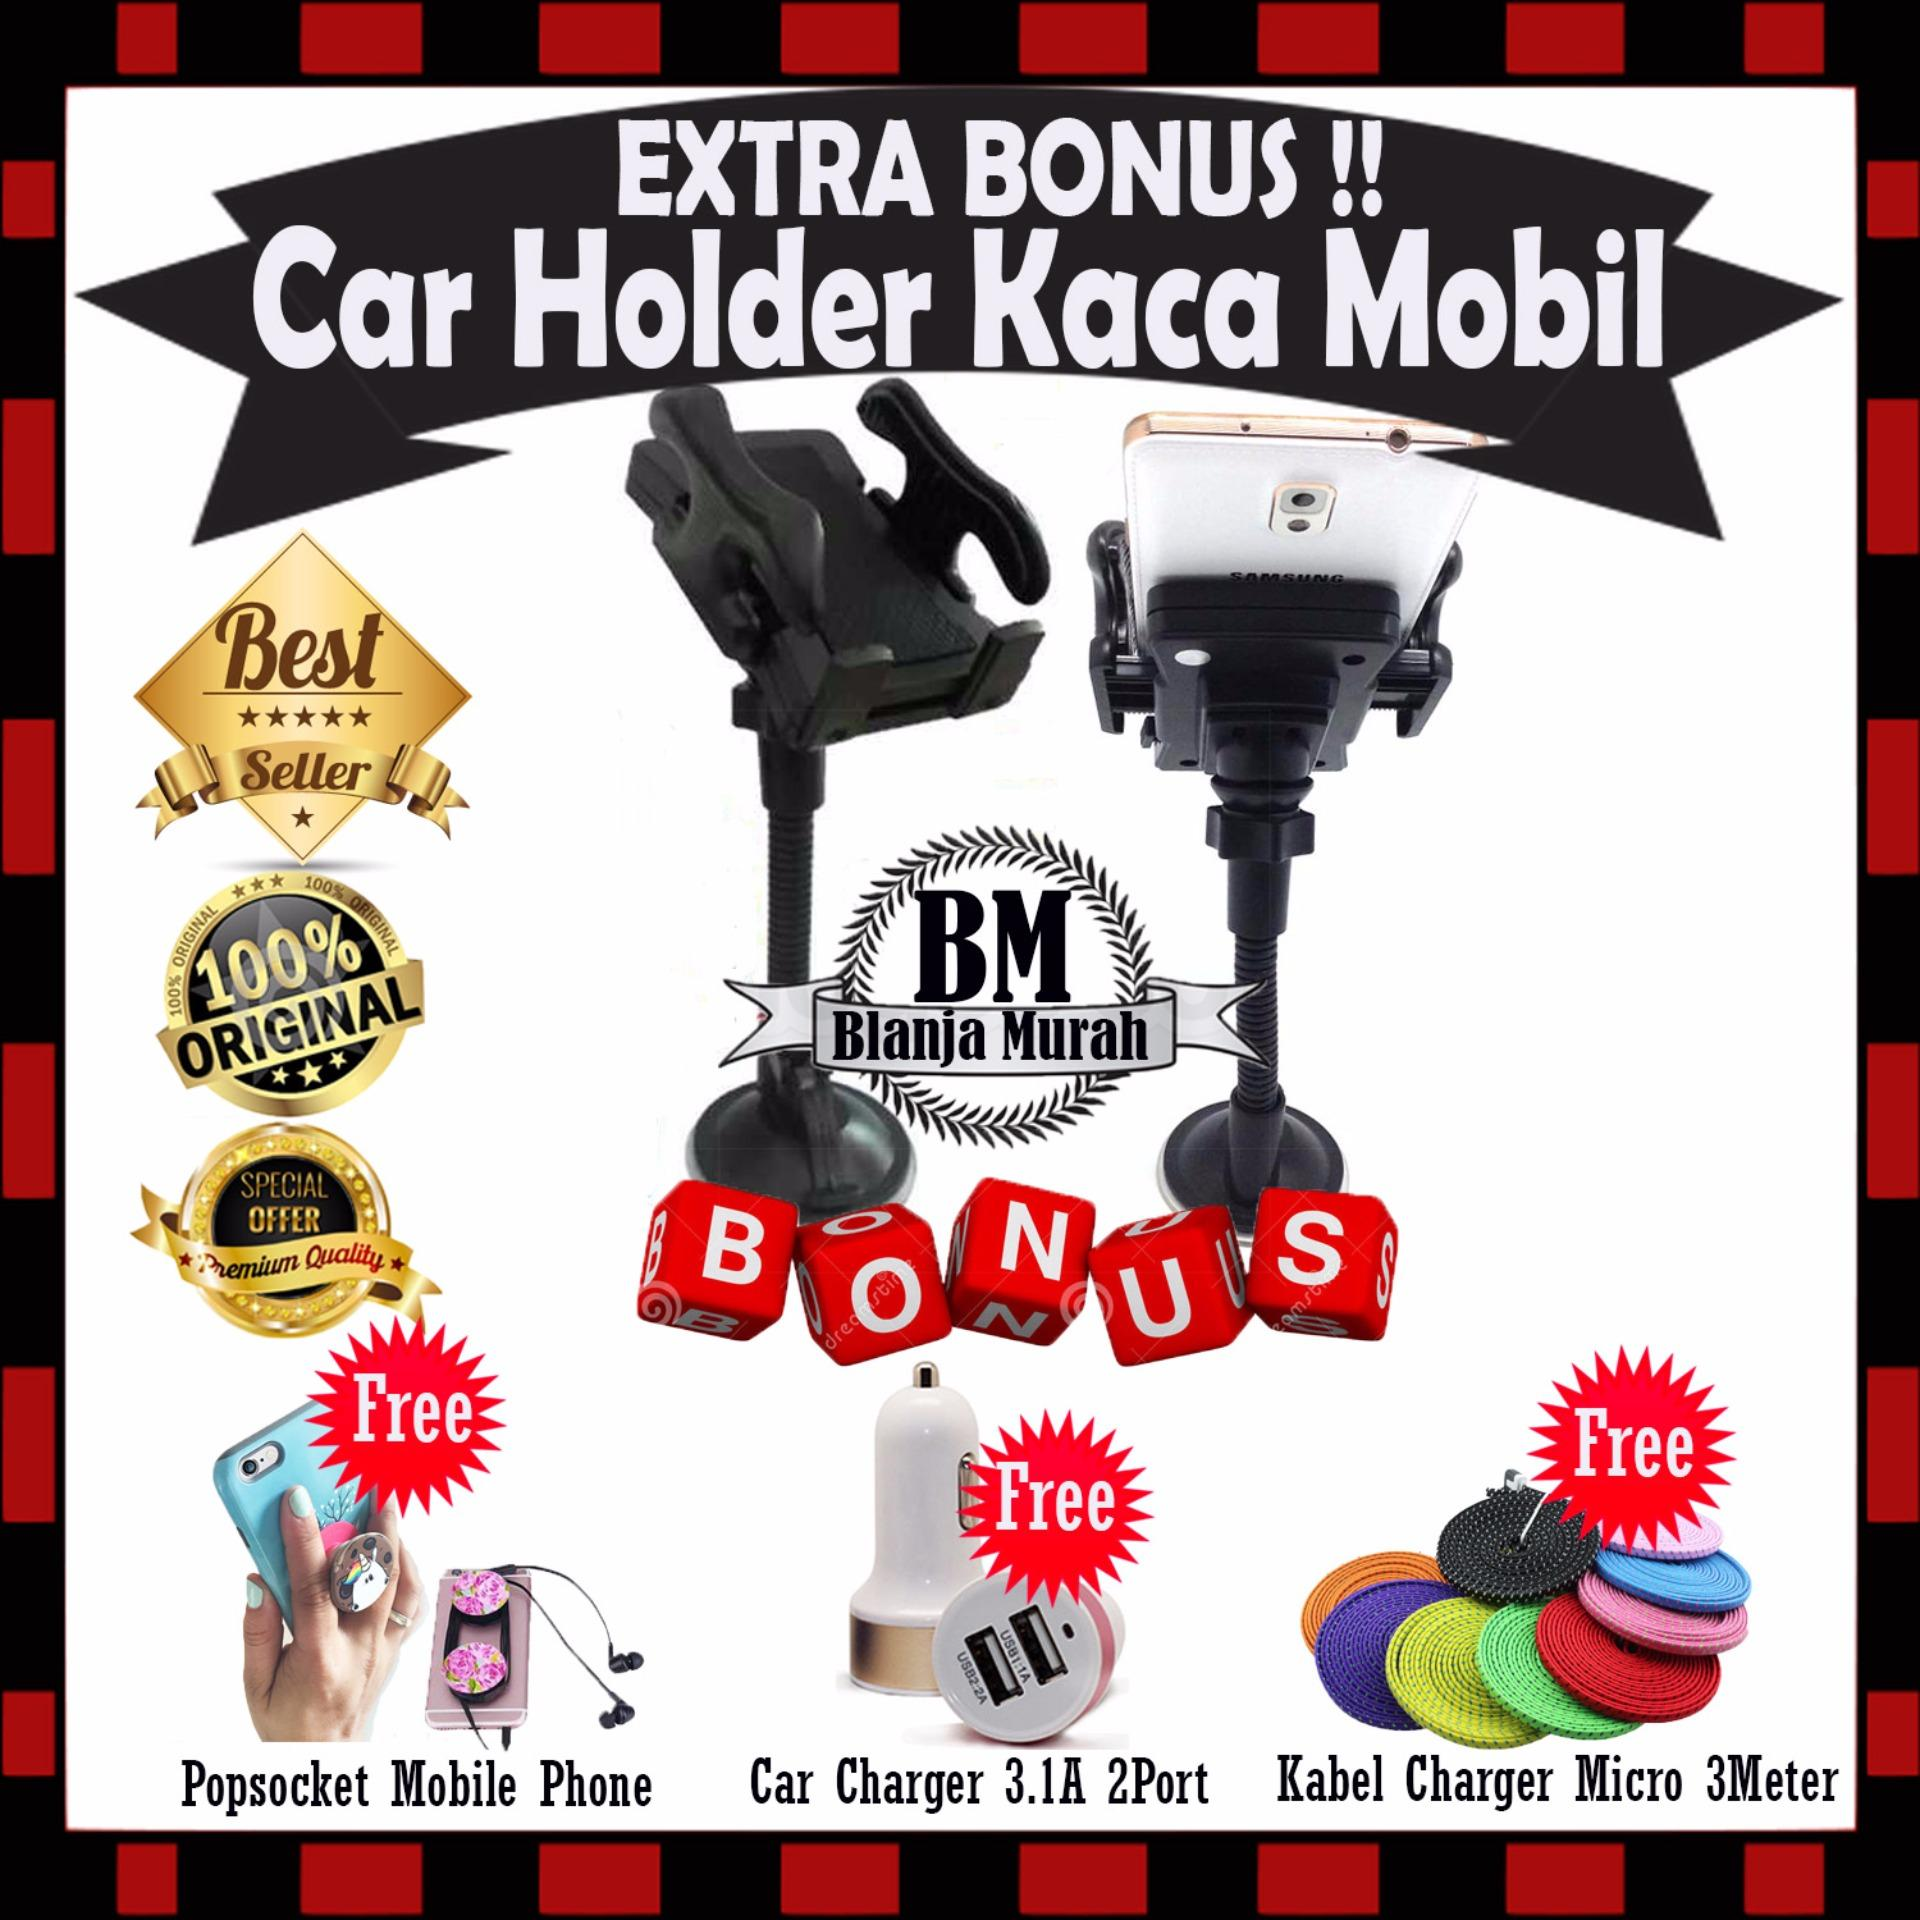 Tips Beli Phone Holder Mobil Universal Untuk Hp Gps Holder Kaca Mobil Flexible Gratis Popsocket Mobile Phone Car Charger 3 1A 2Port Kabel Charger Casan Micro Android 3 Meter